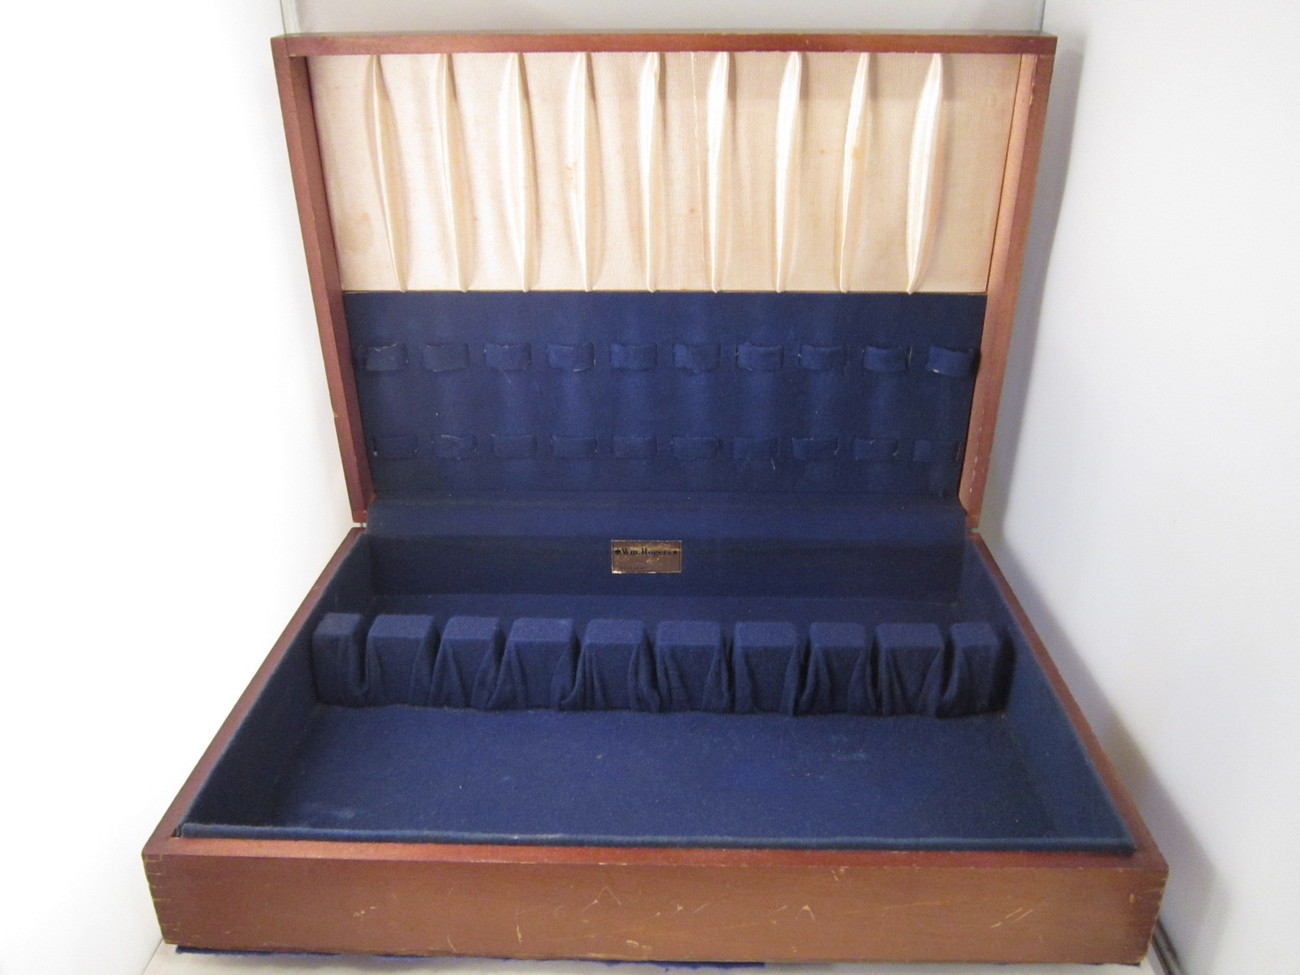 Wm_rogers_silverware_chest_01